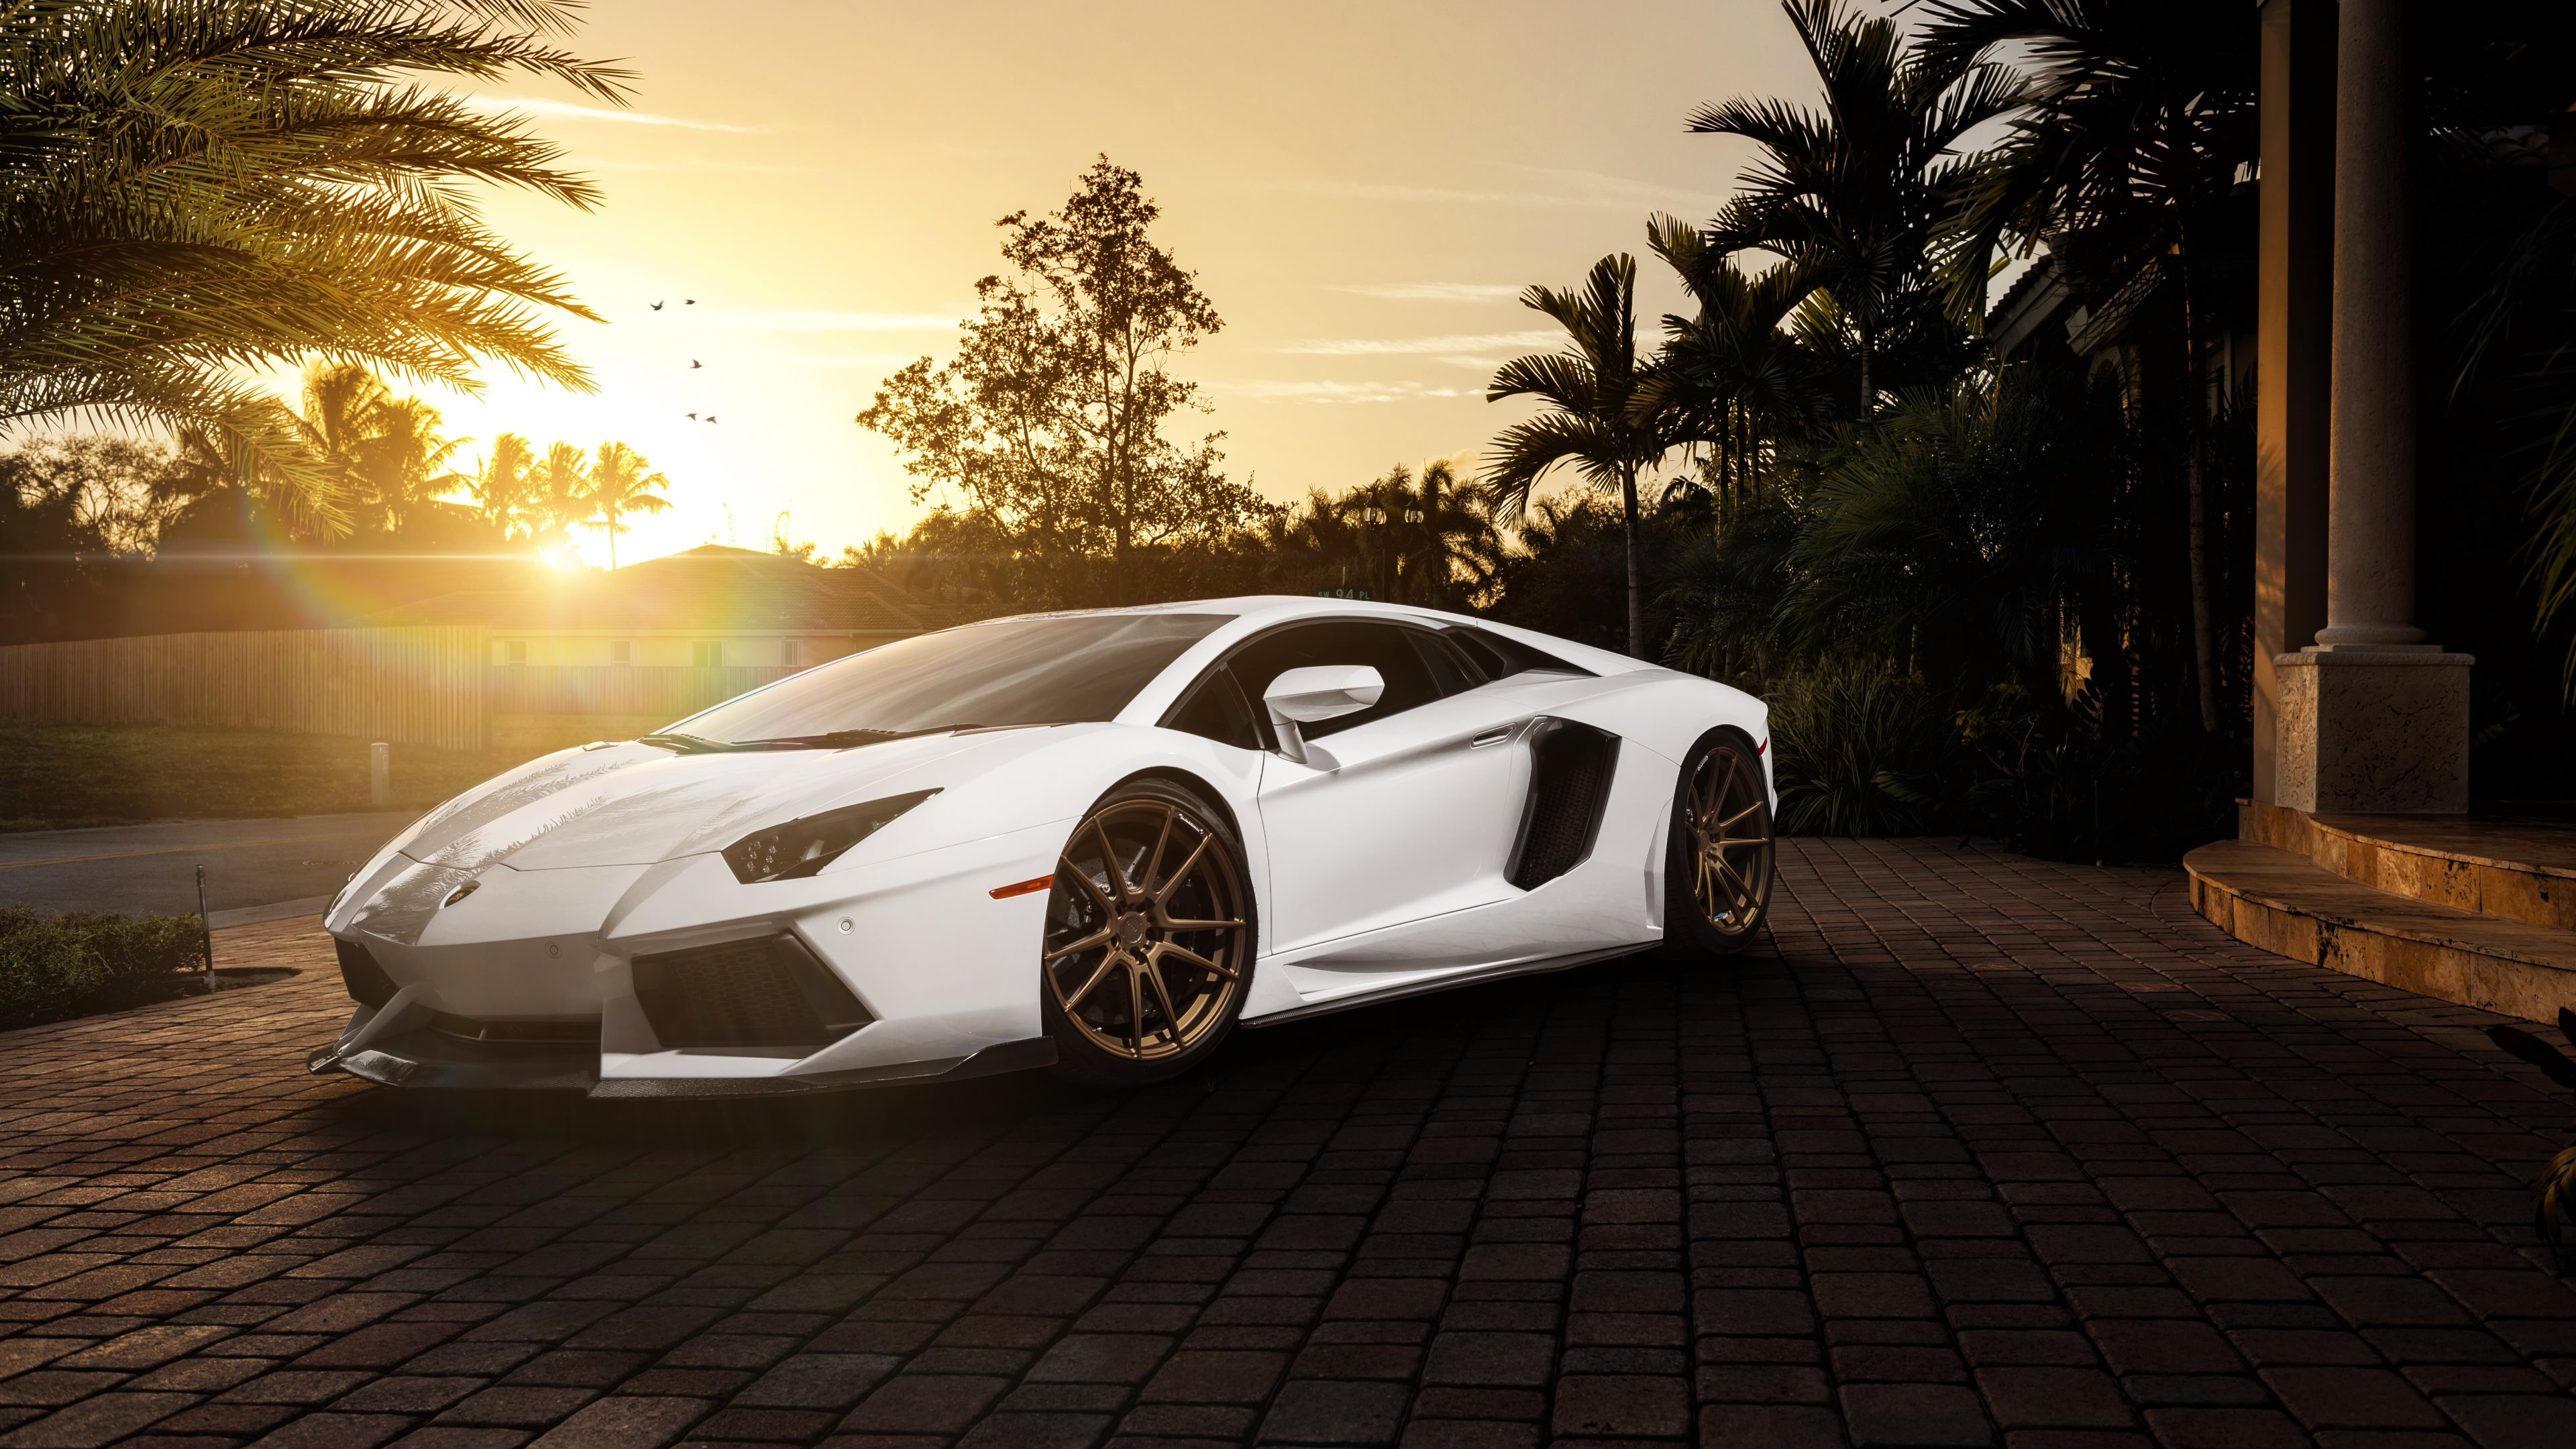 Hd wallpaper lamborghini - Wallpaper Adv 1 Lamborghini Aventador